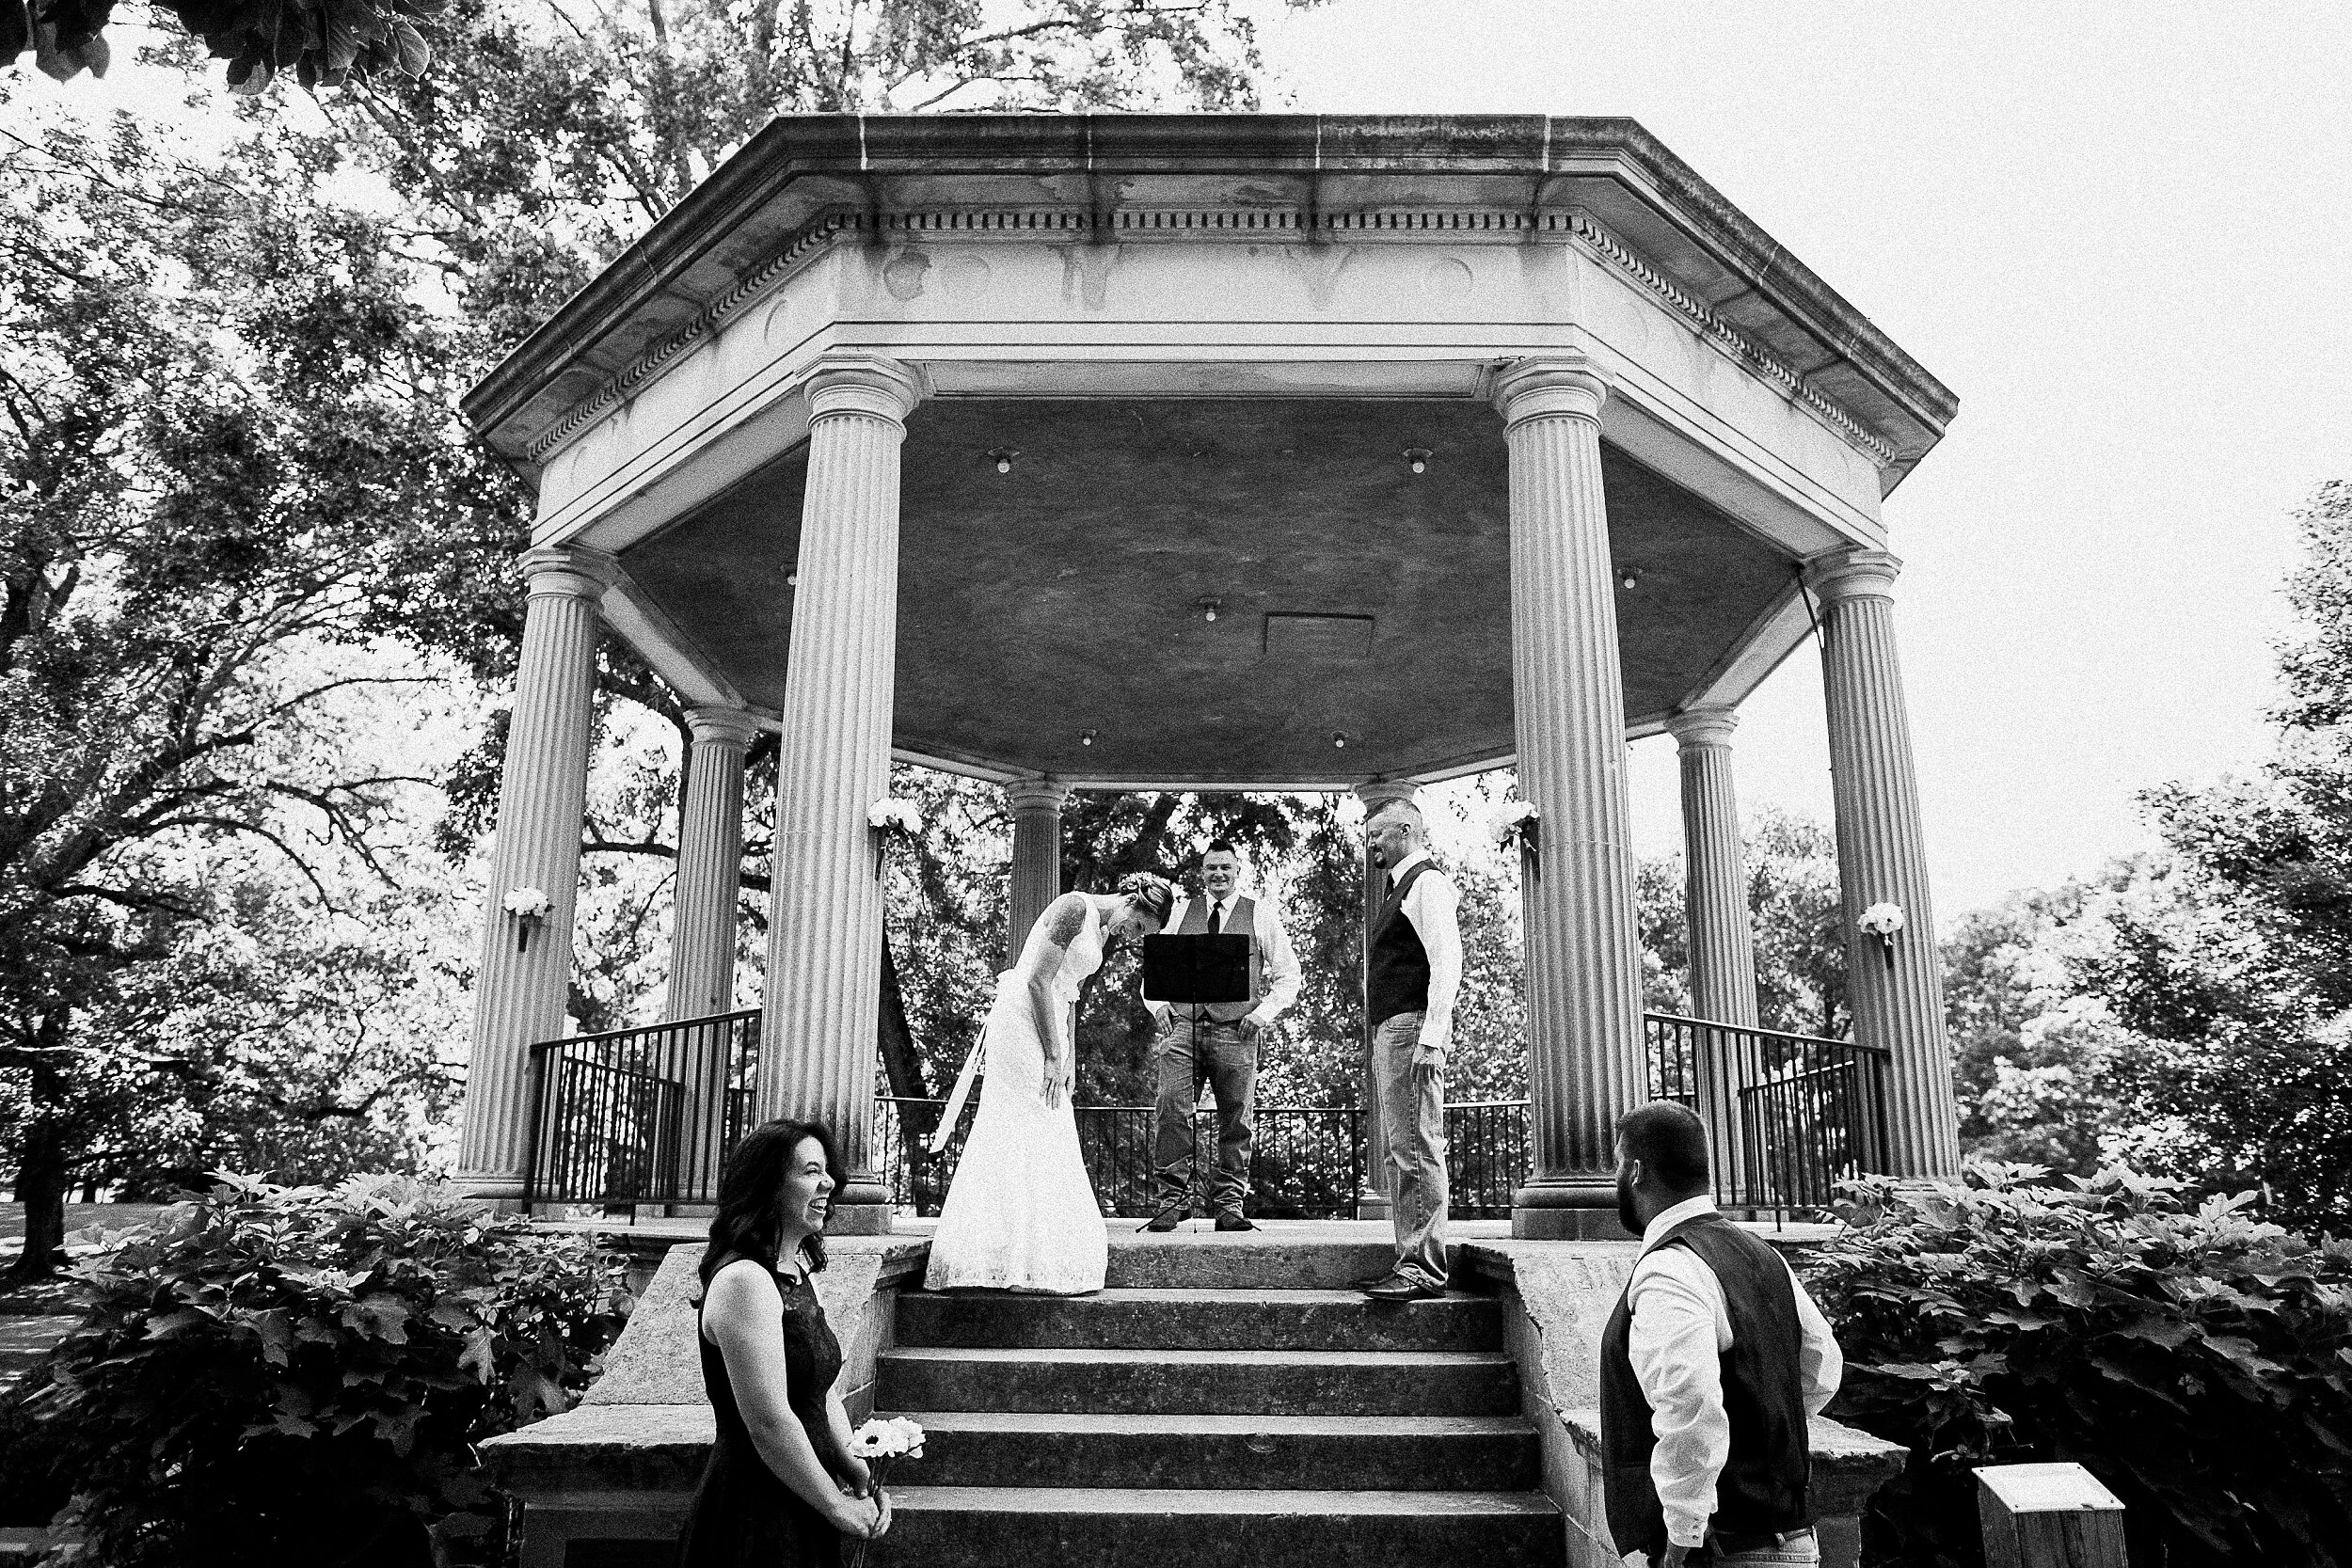 washington-park-gazebo-springfield-il-wedding-photography_0030.jpg